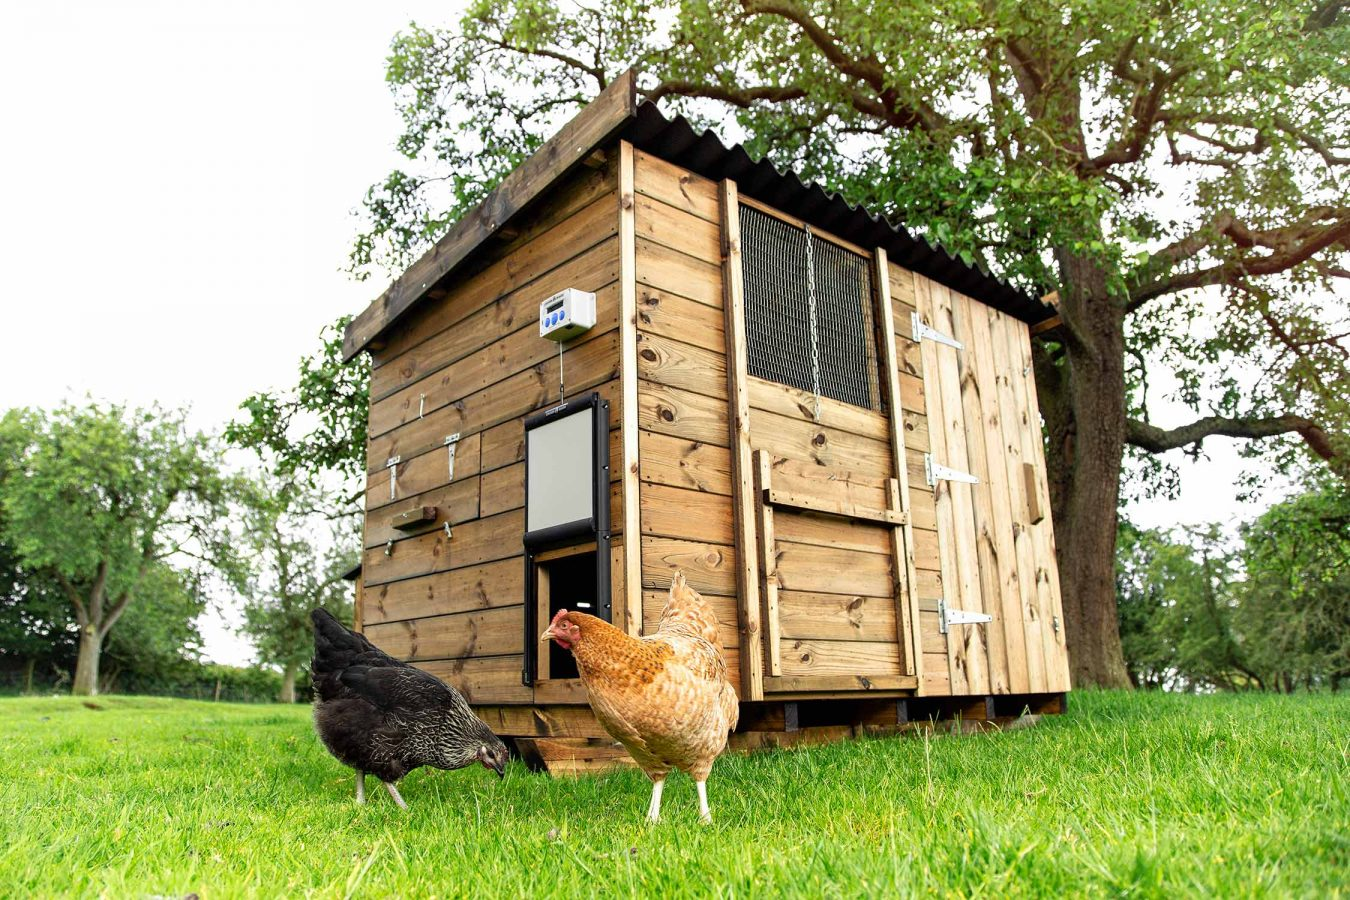 location-chicken-coop-product-photography-for-chickenguard